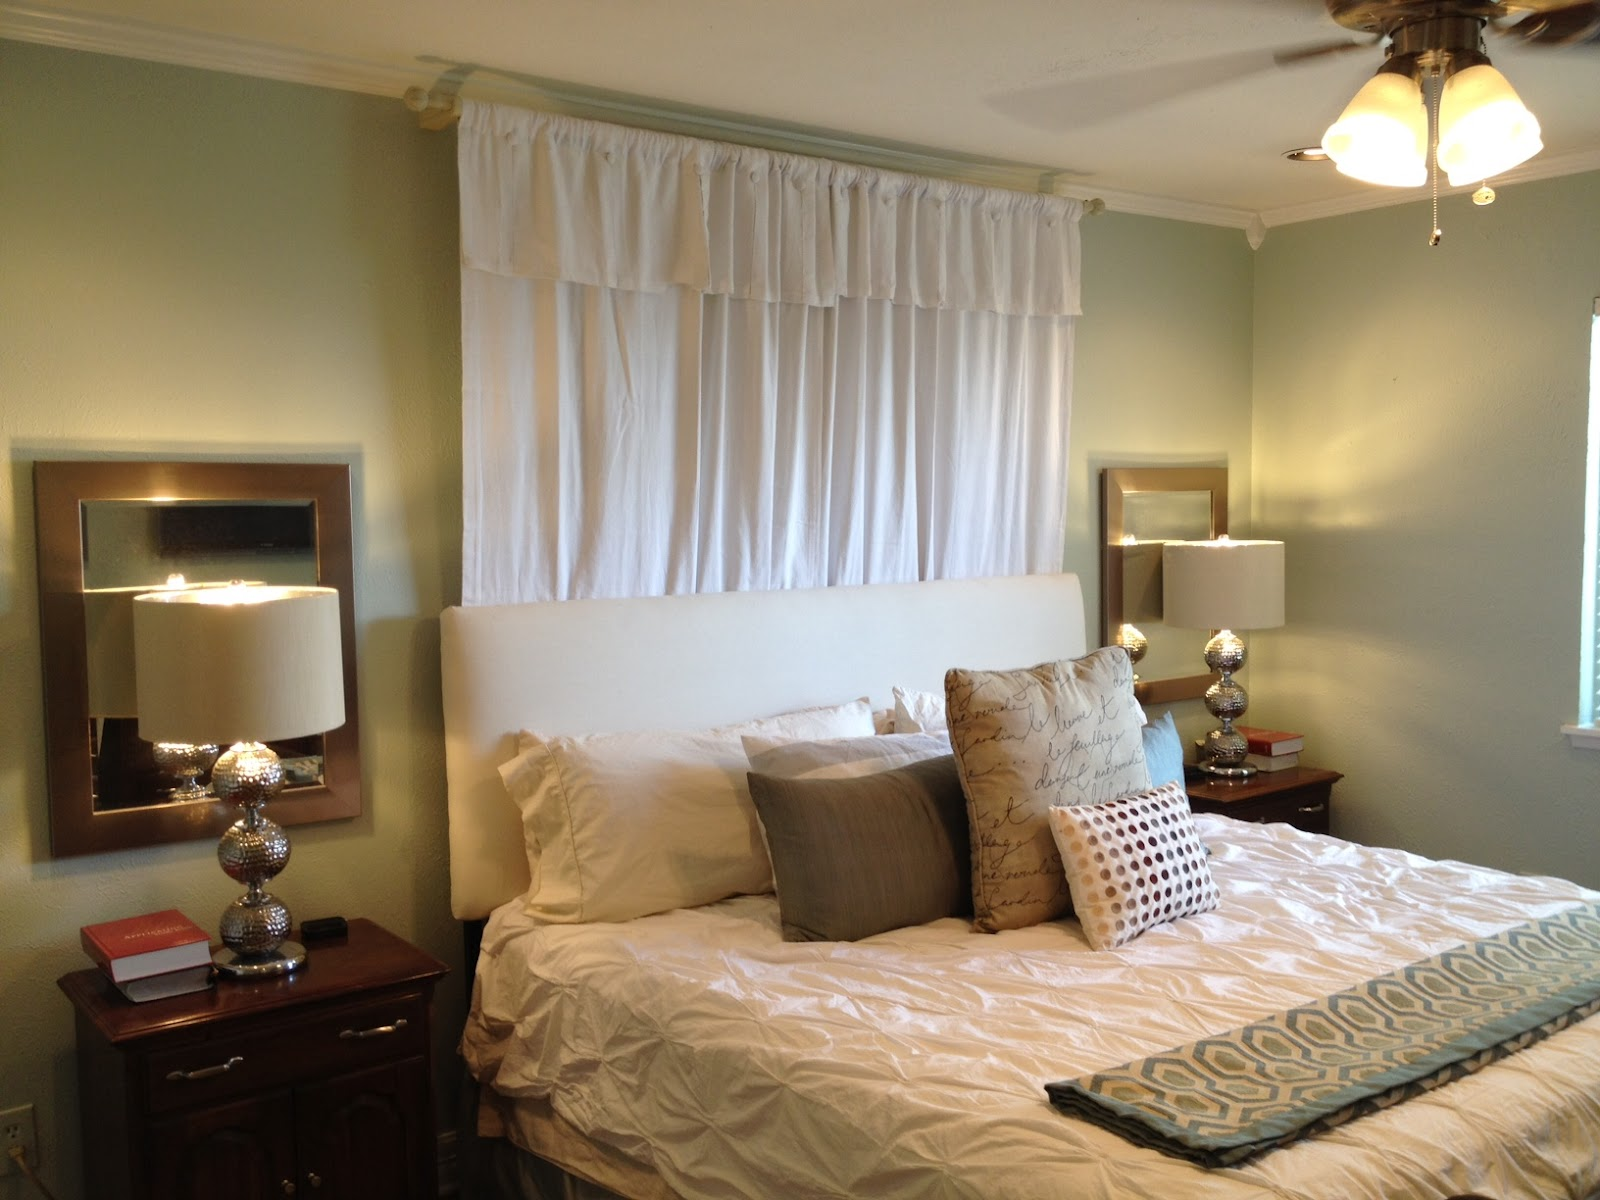 Image of: Curtain Headboard Decor